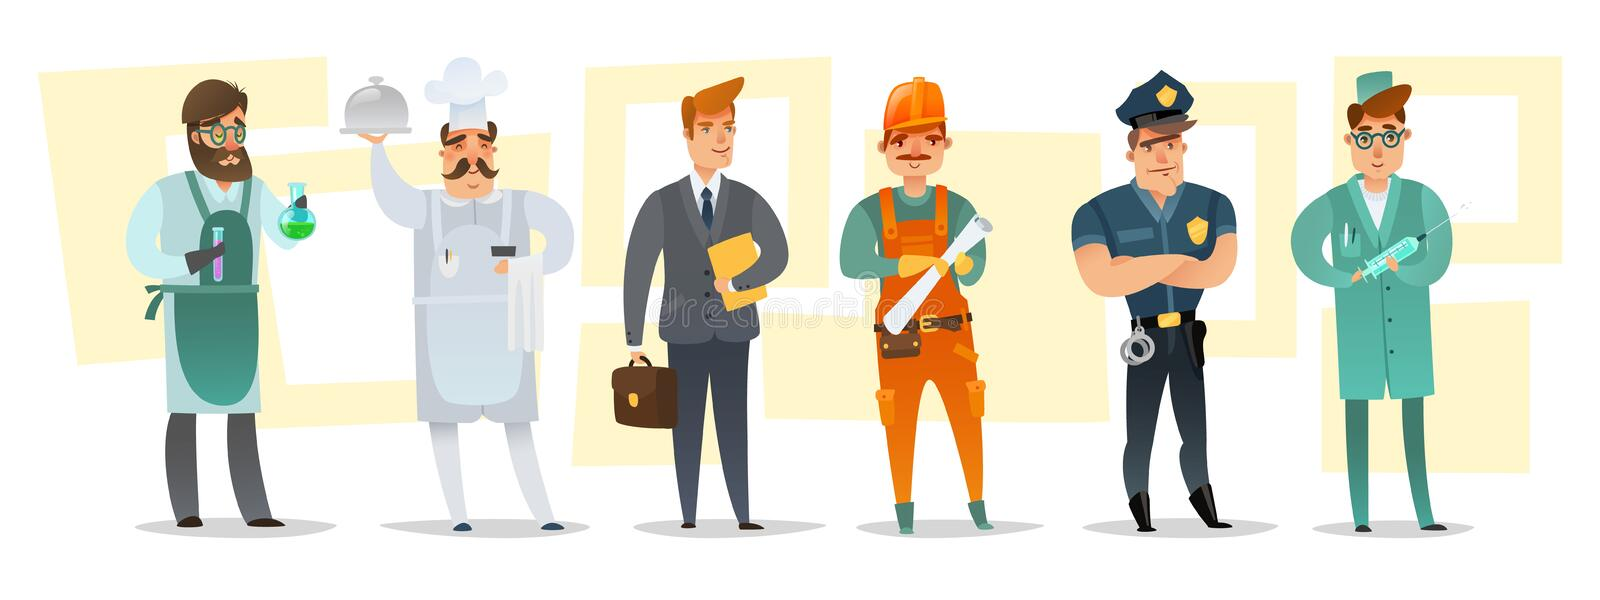 Cartoon different professions male characters horizontal illustration stock illustration